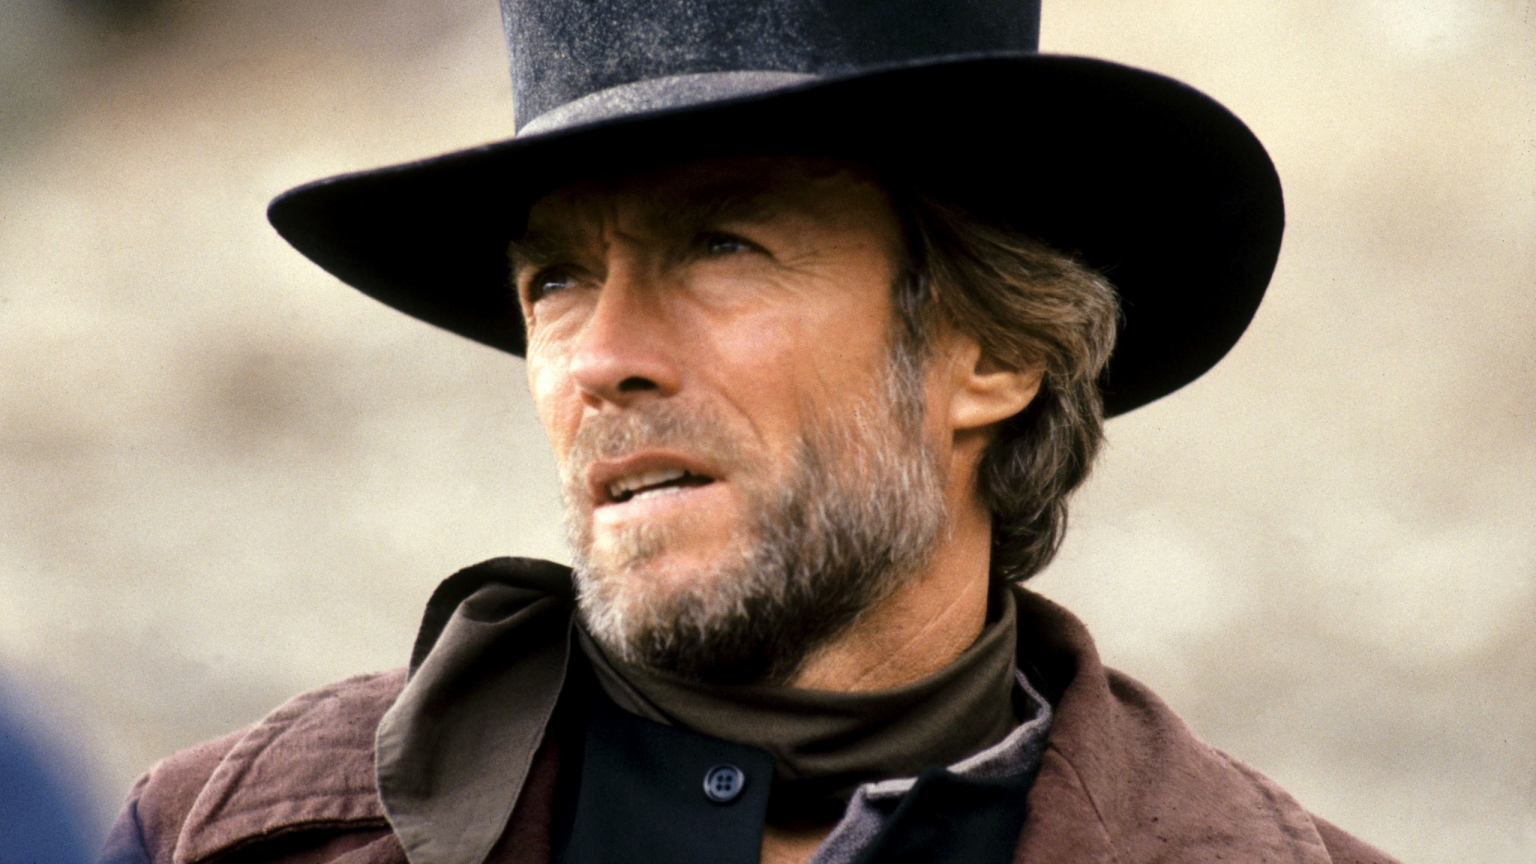 Clint Eastwood Vintage for 1536 x 864 HDTV resolution